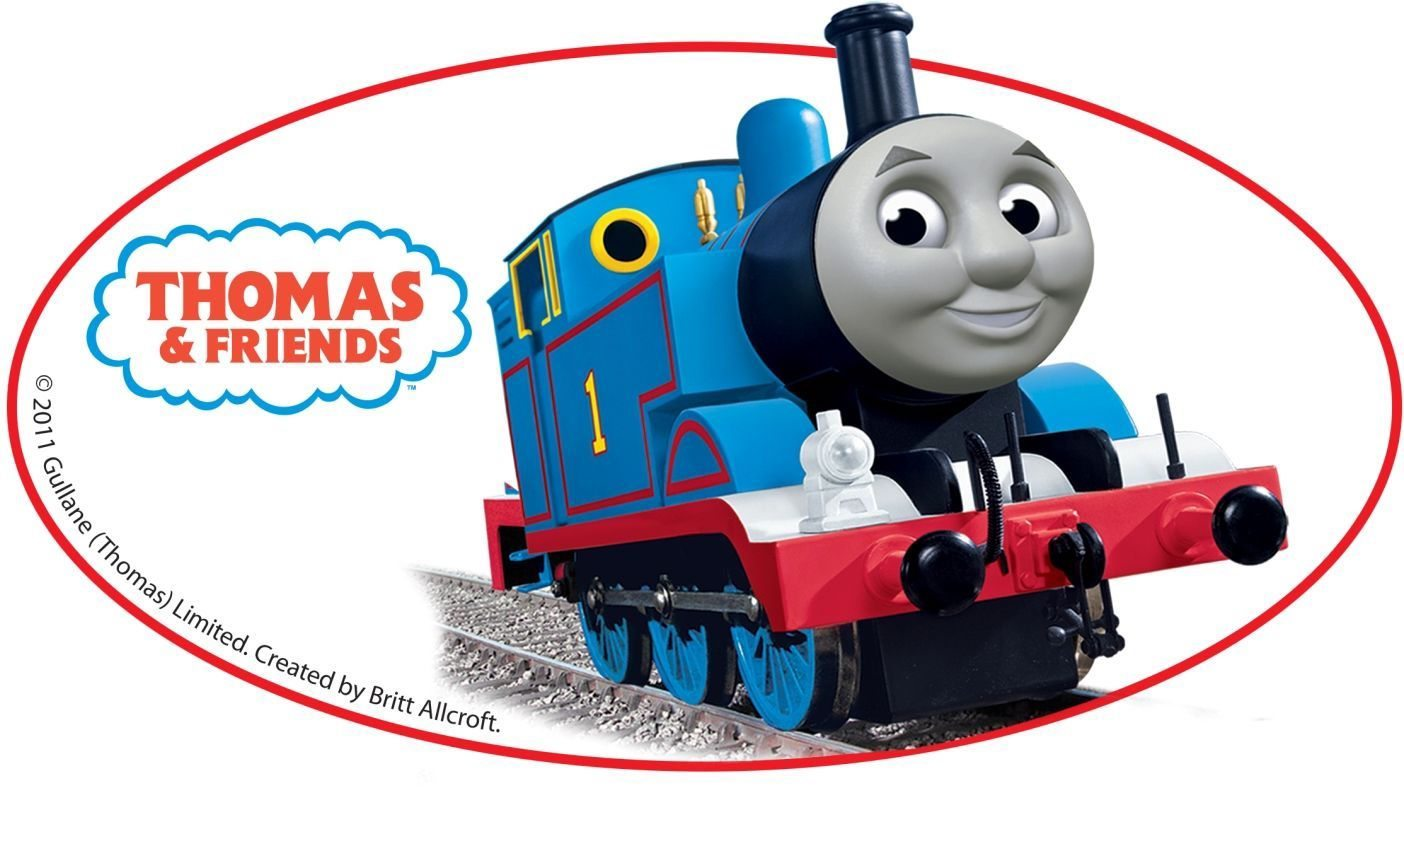 thomas_and_friends_web.32746d7f